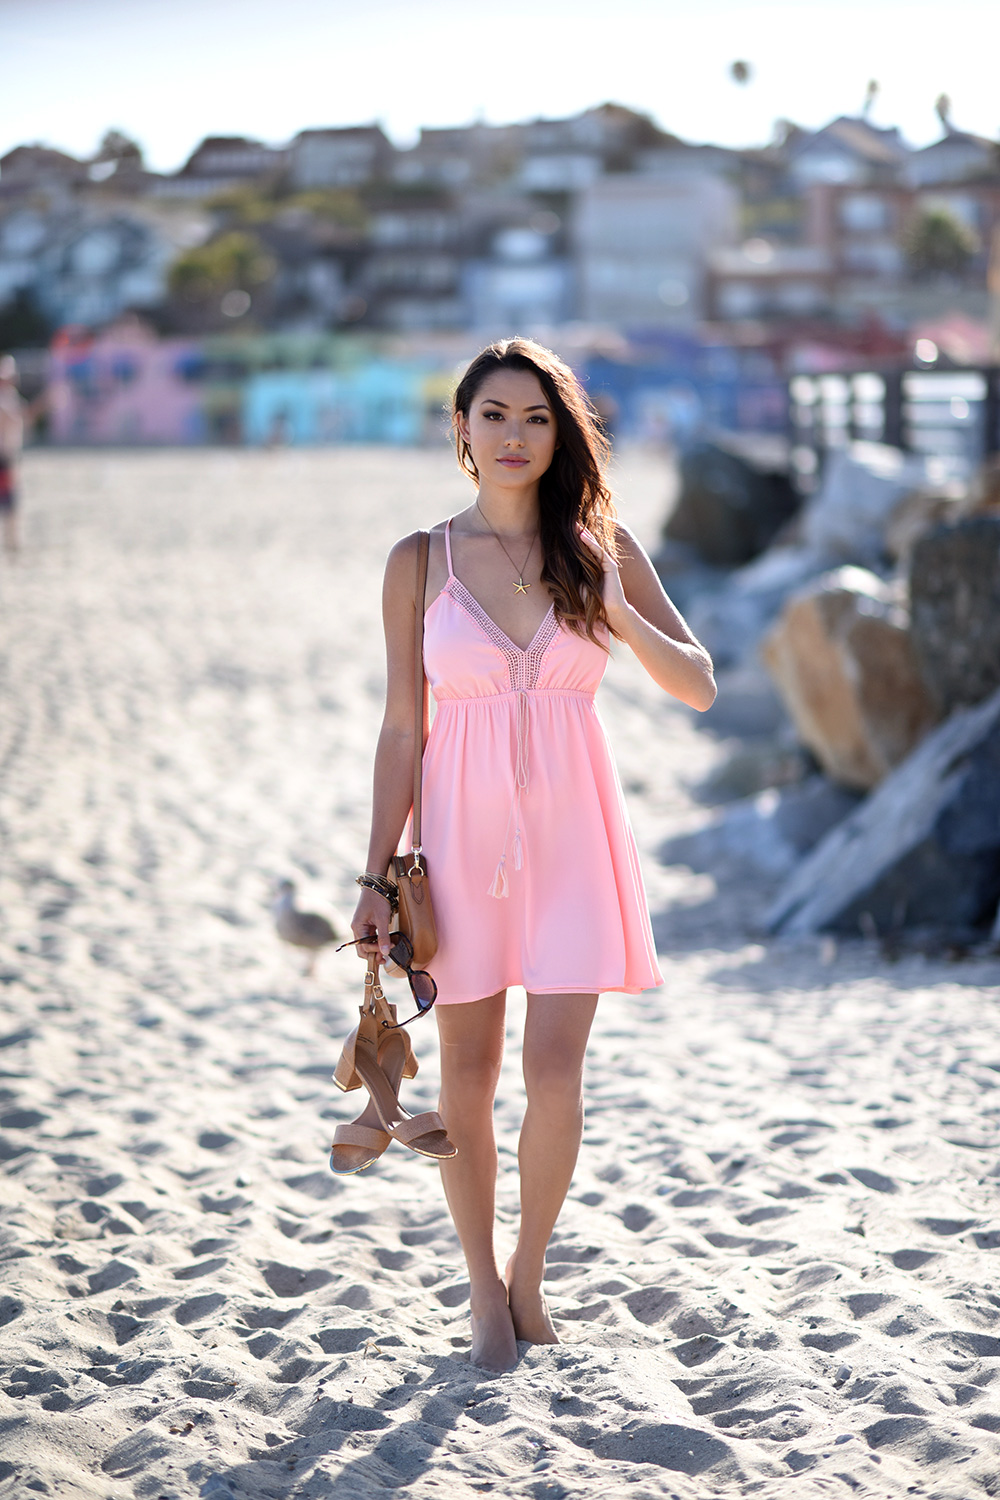 dc7d575d077 Jessica R. looks adorable in this super cute blush pink beach dress